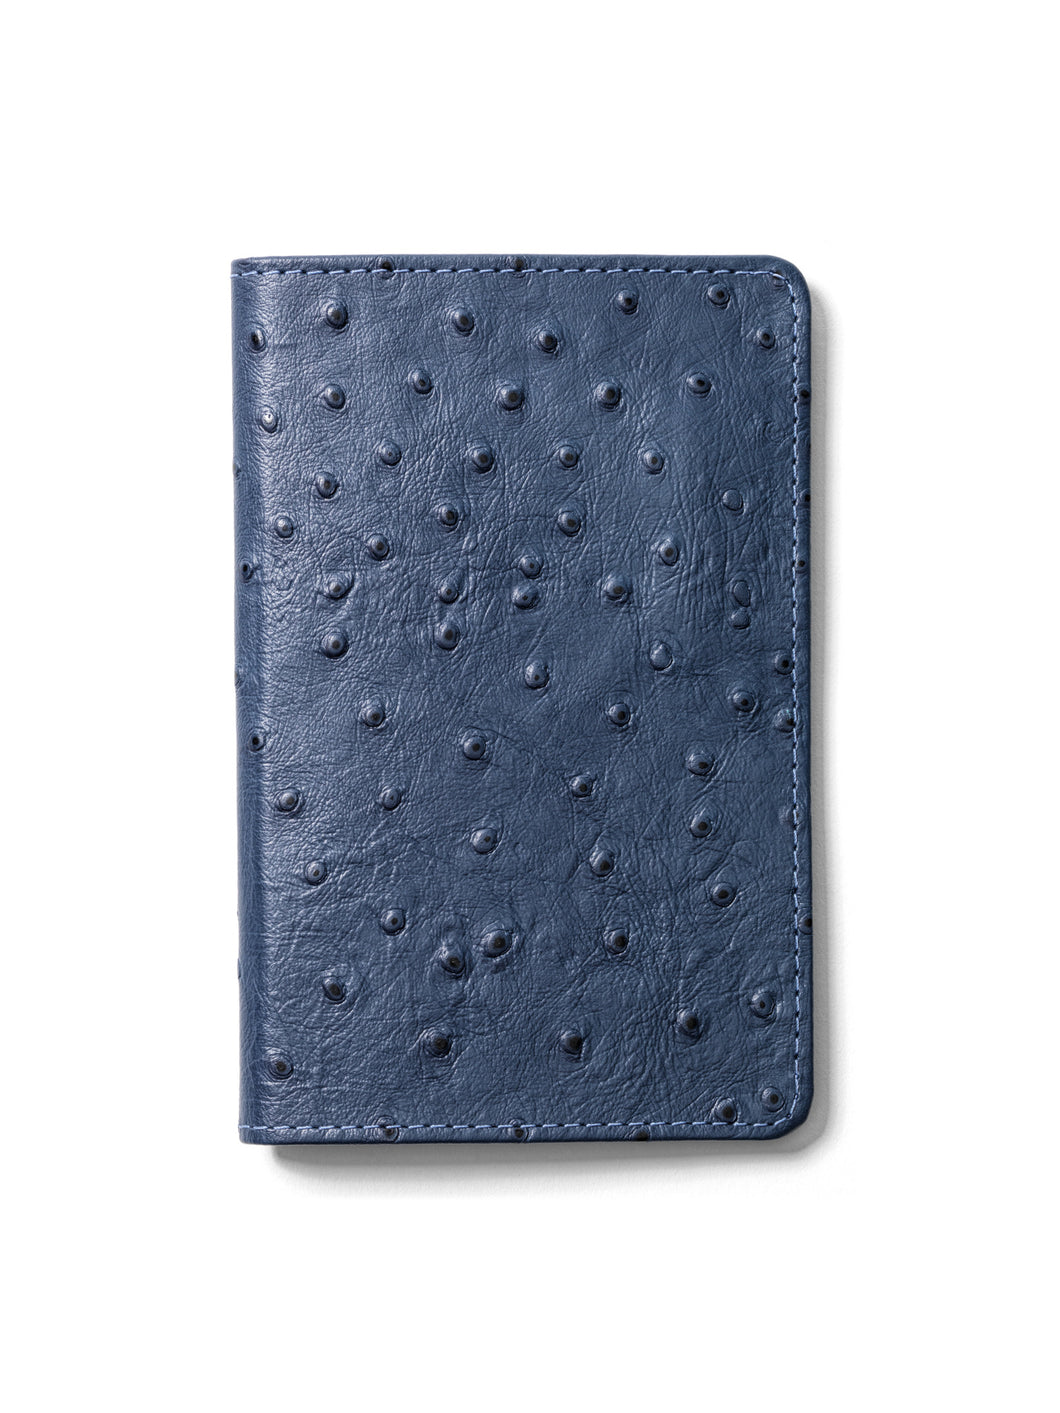 Claridad (Clarity) Blue Ostrich Leather Journal-Passport